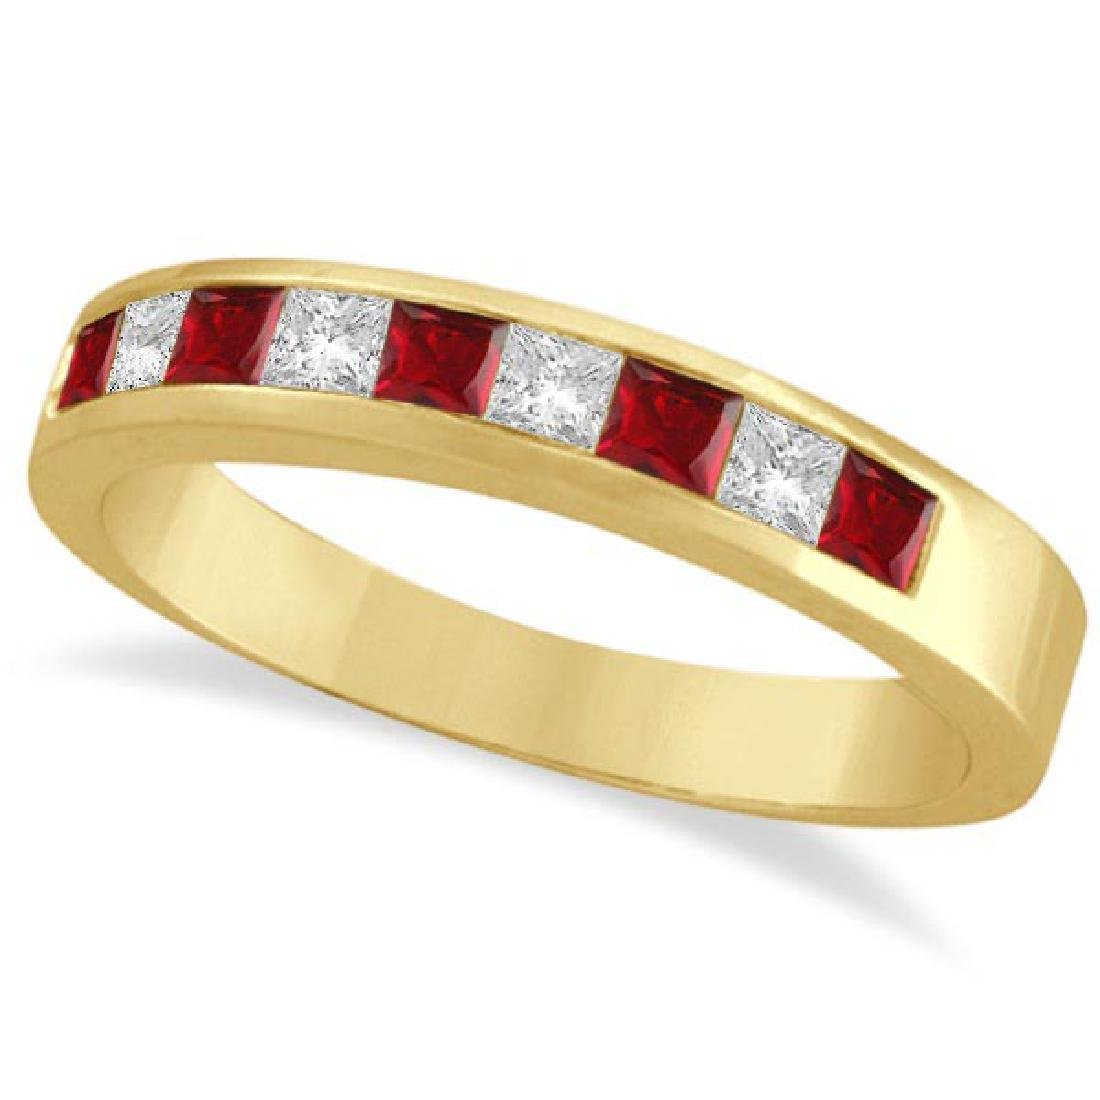 Princess-Cut Channel-Set Diamond and Ruby Ring Band 14k